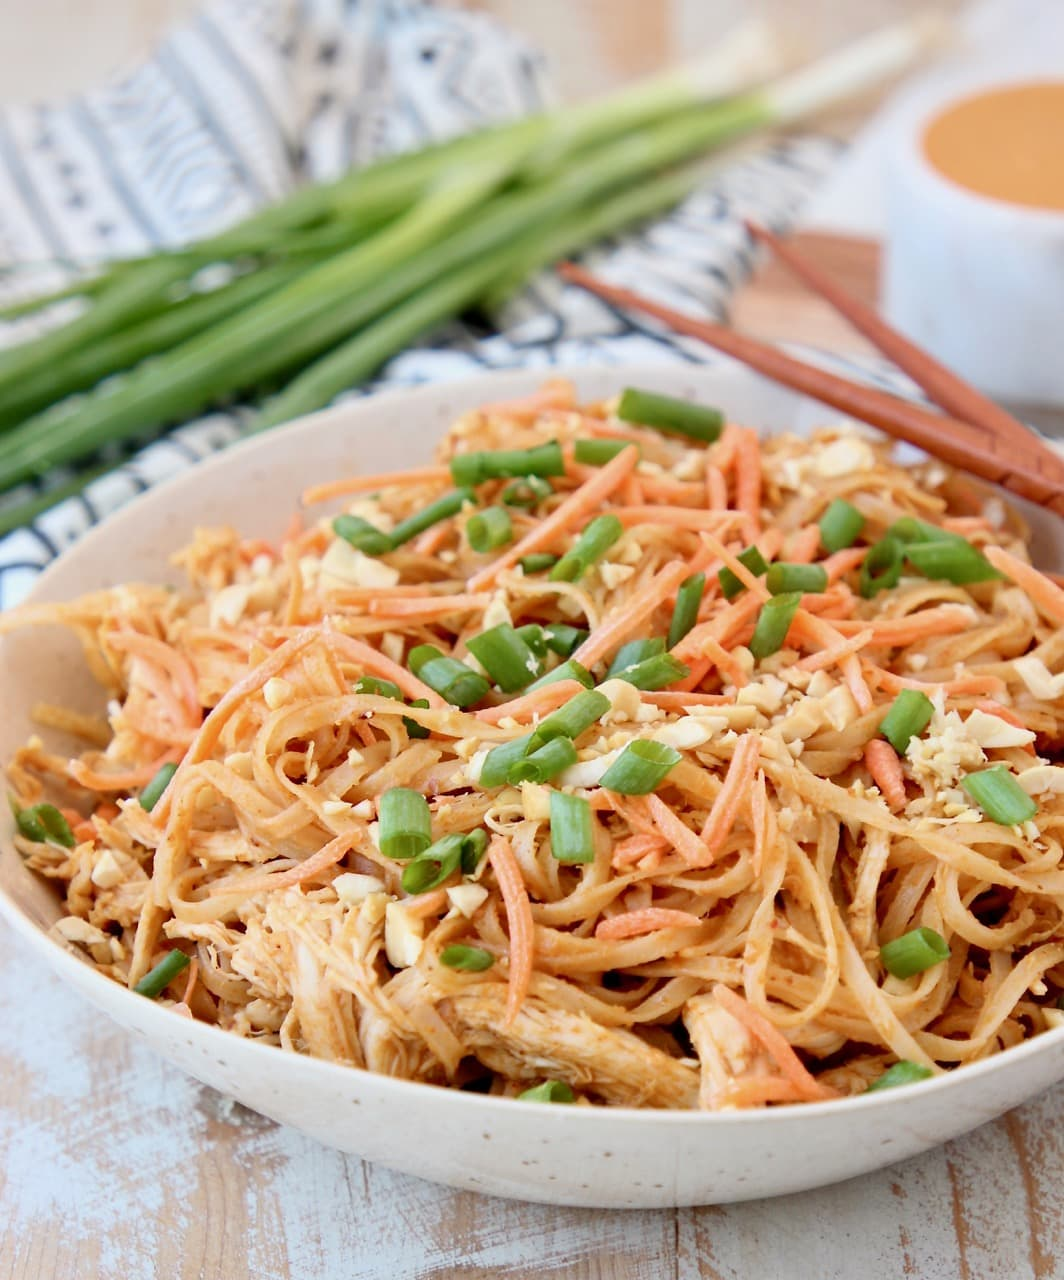 Pressure cooker Thai Peanut Chicken Noodles with shredded carrots, peanuts and scallions